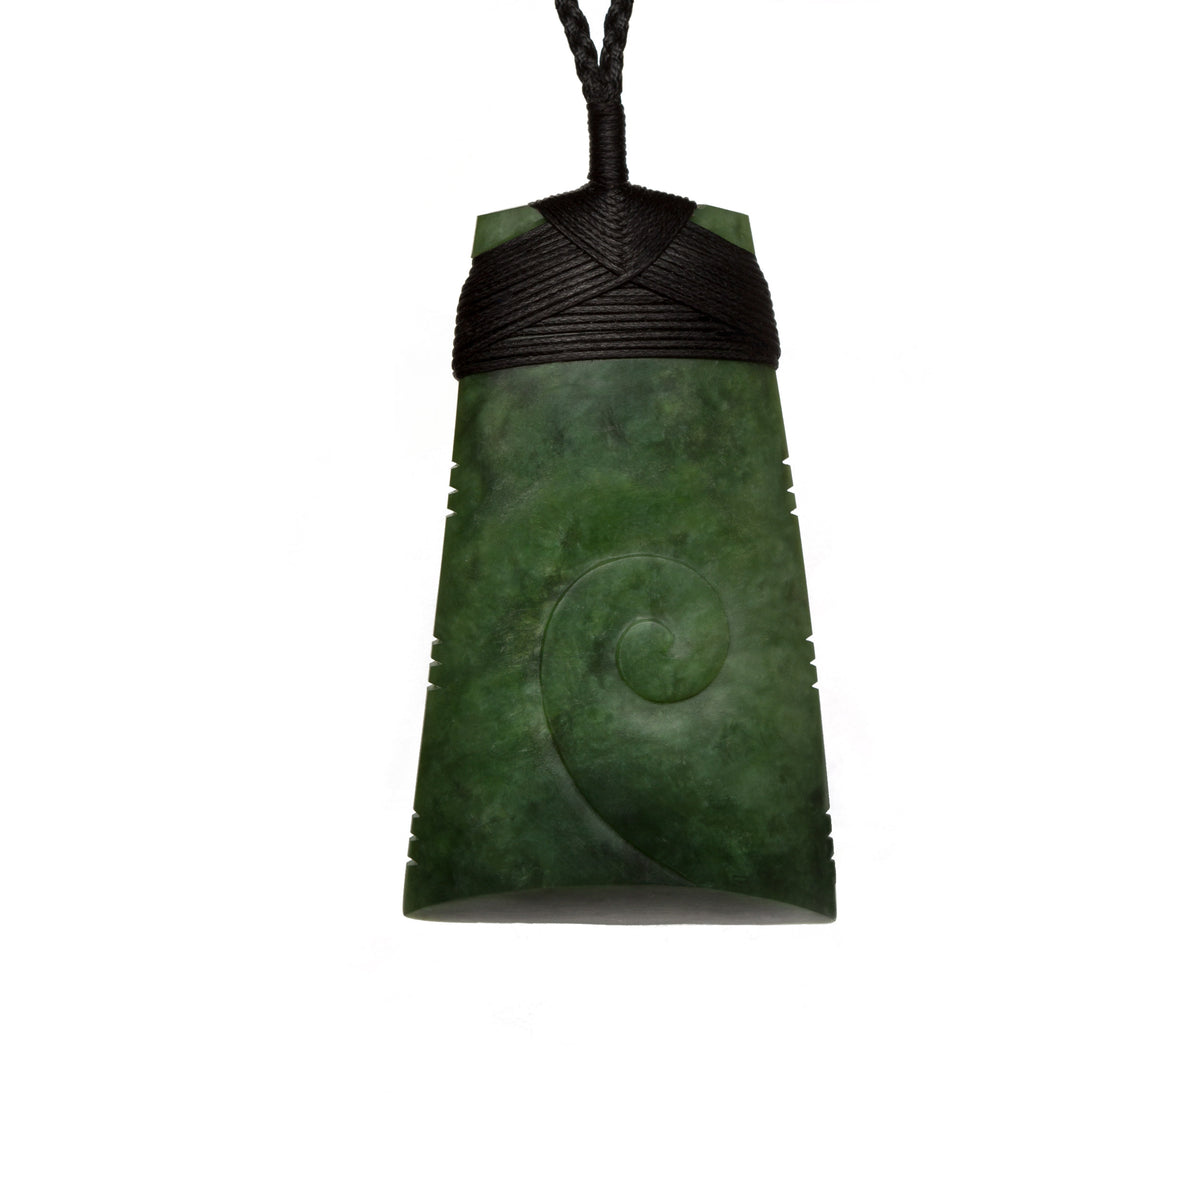 New Zealand Pounamu // TAMATOKO628P / 76mm x 46mm